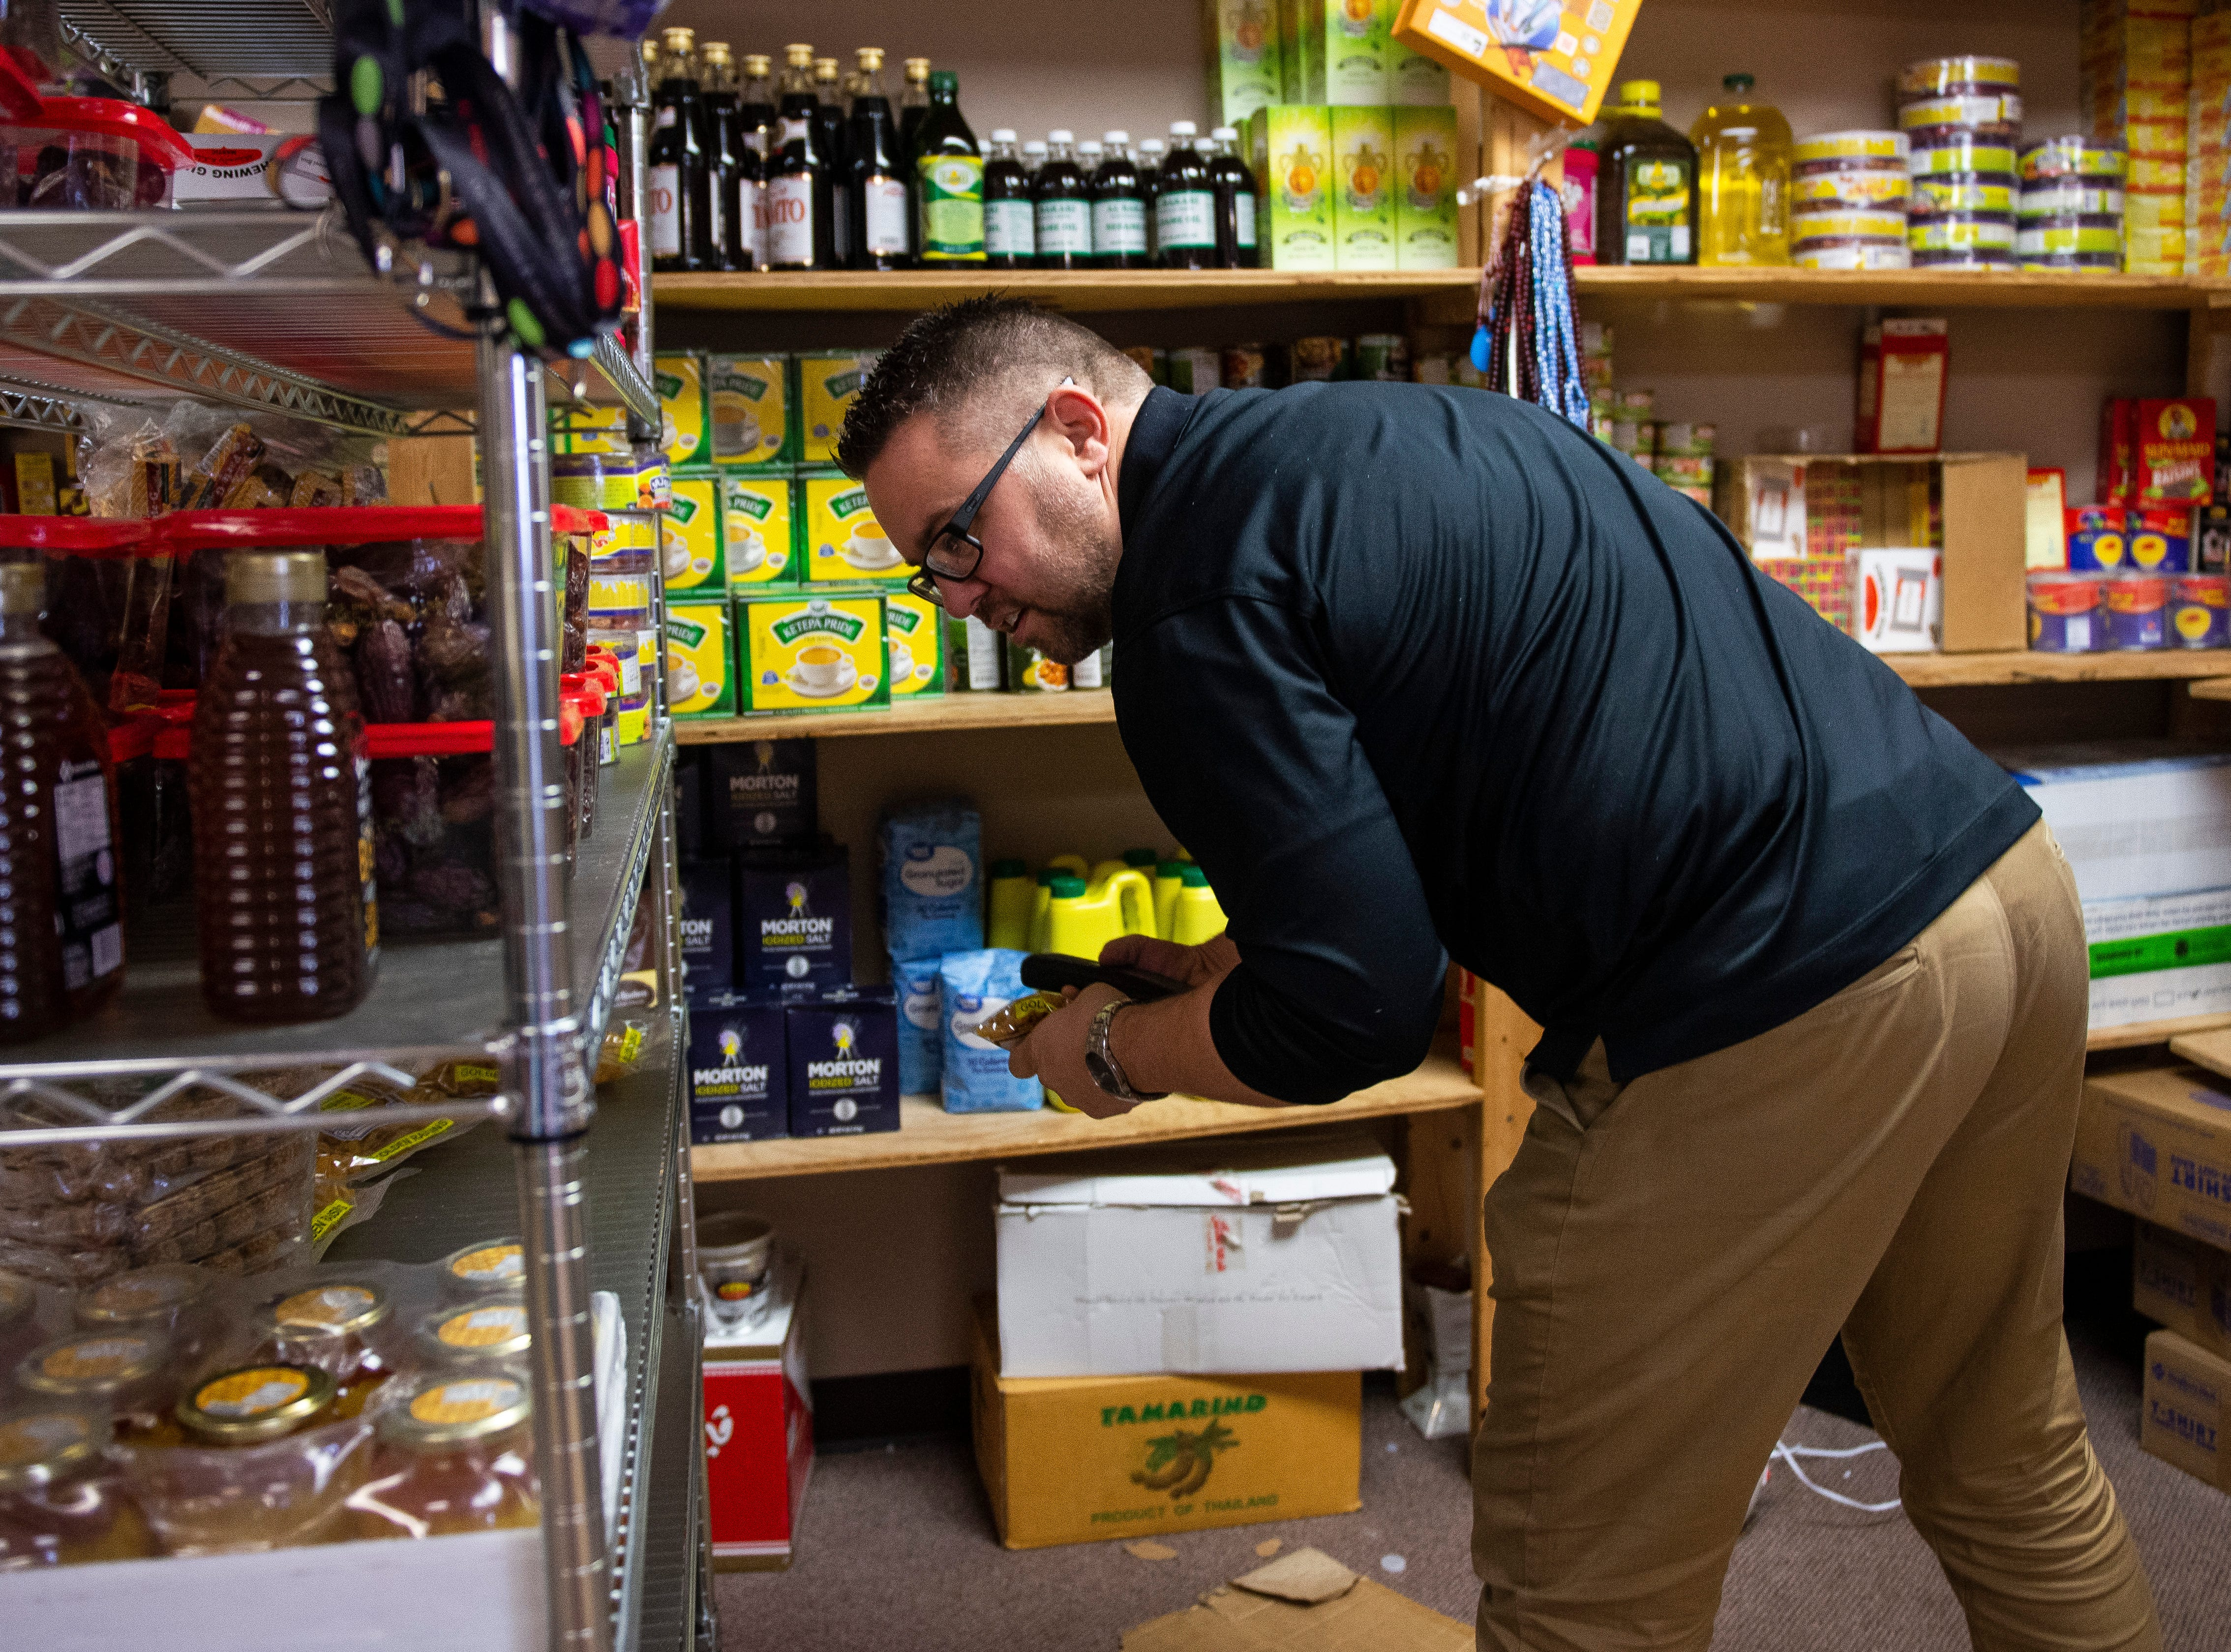 Kearny County Hospital CEO Benjamin Anderson shops at the African Shop, which stocks East African groceries and clothes. Anderson started buying tea, dates and olive oil at the African Store, slowly establishing a relationship with the staff and other customers.